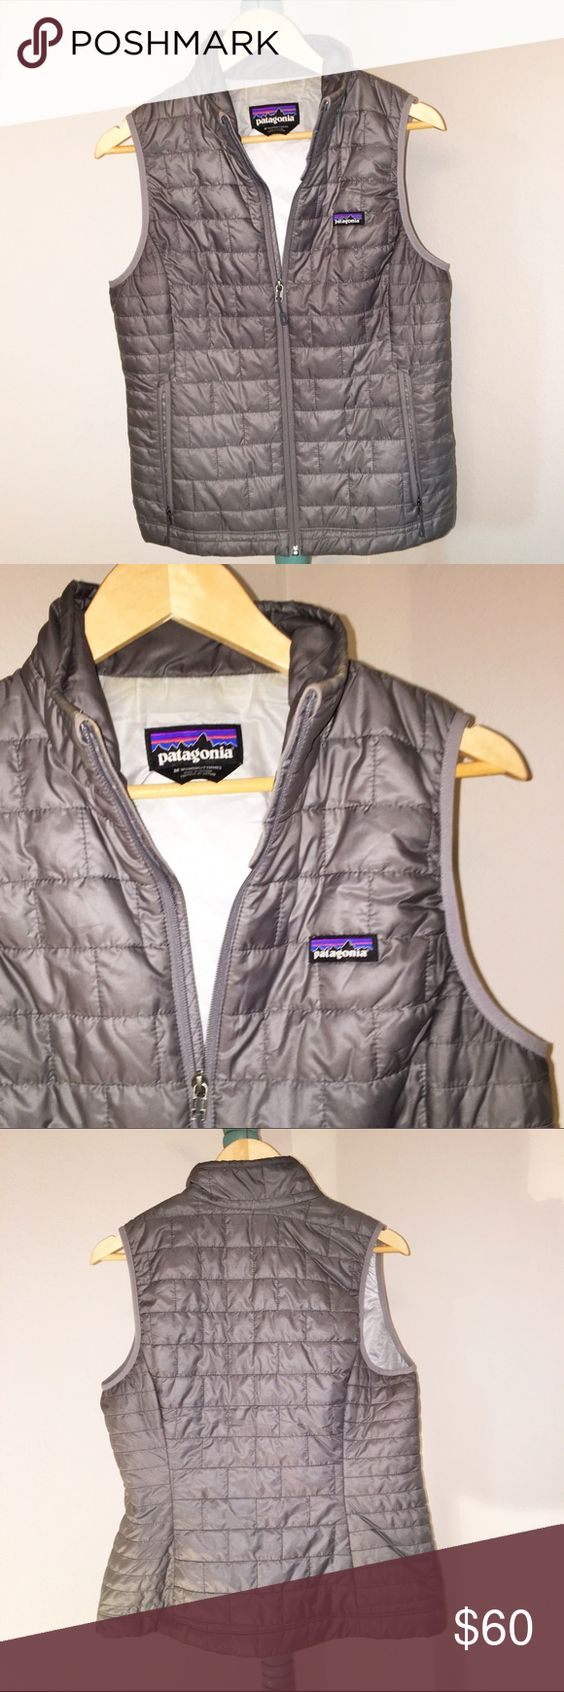 Patagonia Nana Puff Vest in Feather Gray Women's medium. Purchased at REI in February. Kinda hate to see it go, but lost my job and it is pretty dang hot in Louisiana! Perfect condition. Price is firm. Enjoy. 😊 Jackets & Coats Vests